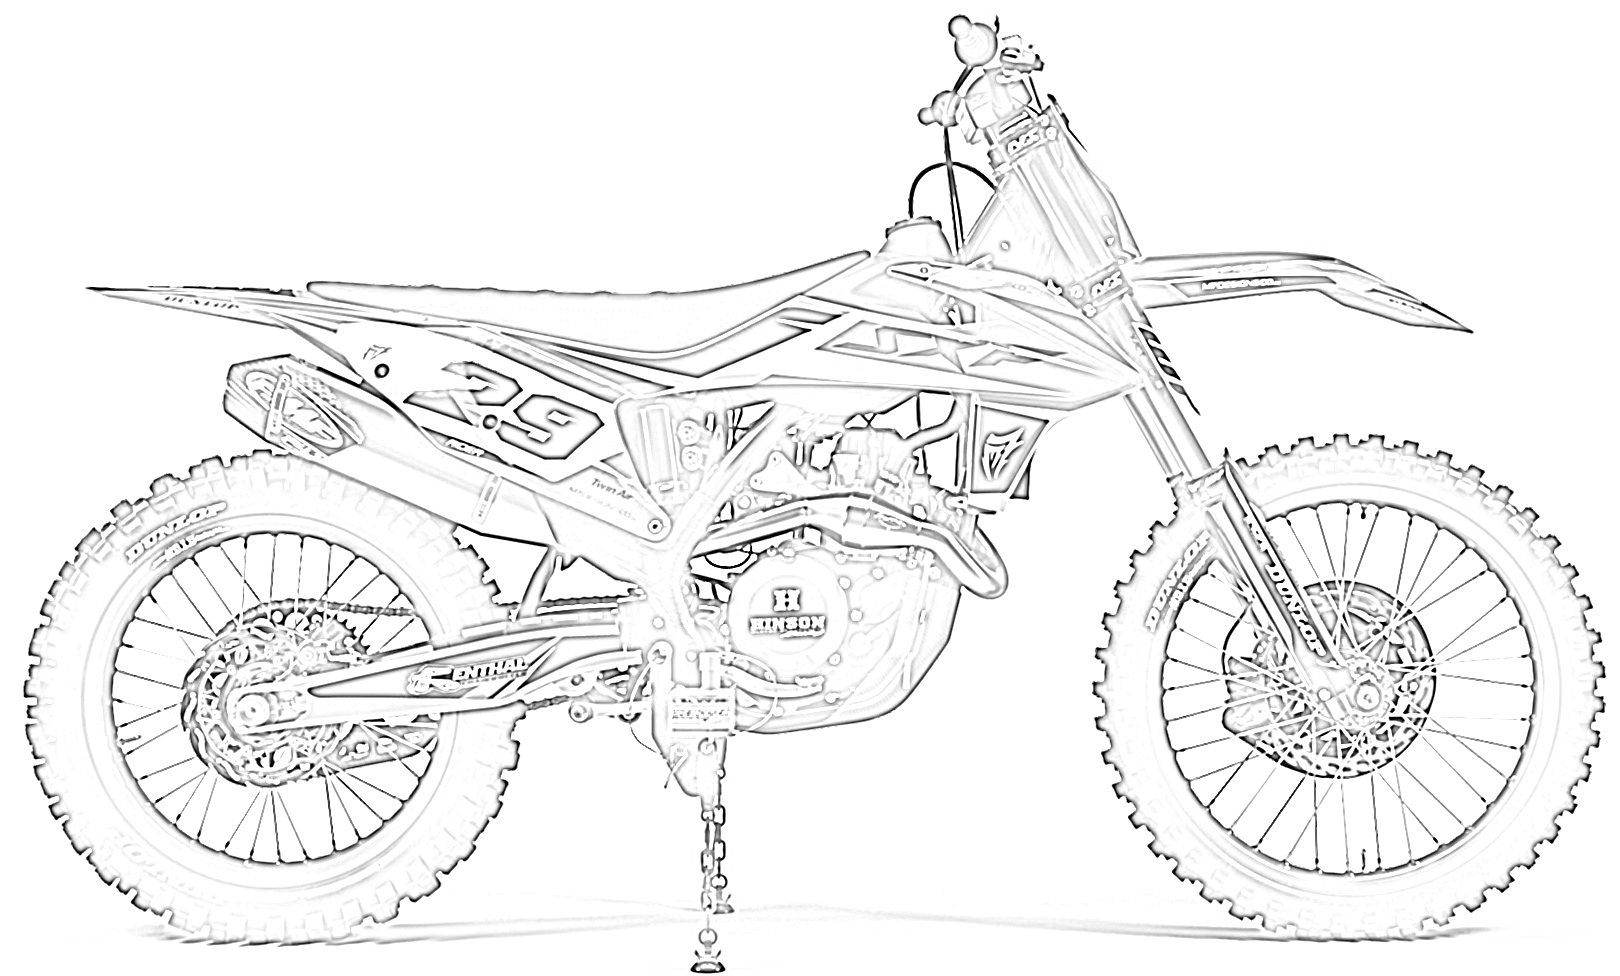 dirt bike pictures to color motocross bikes coloring pages coloring home to pictures dirt bike color